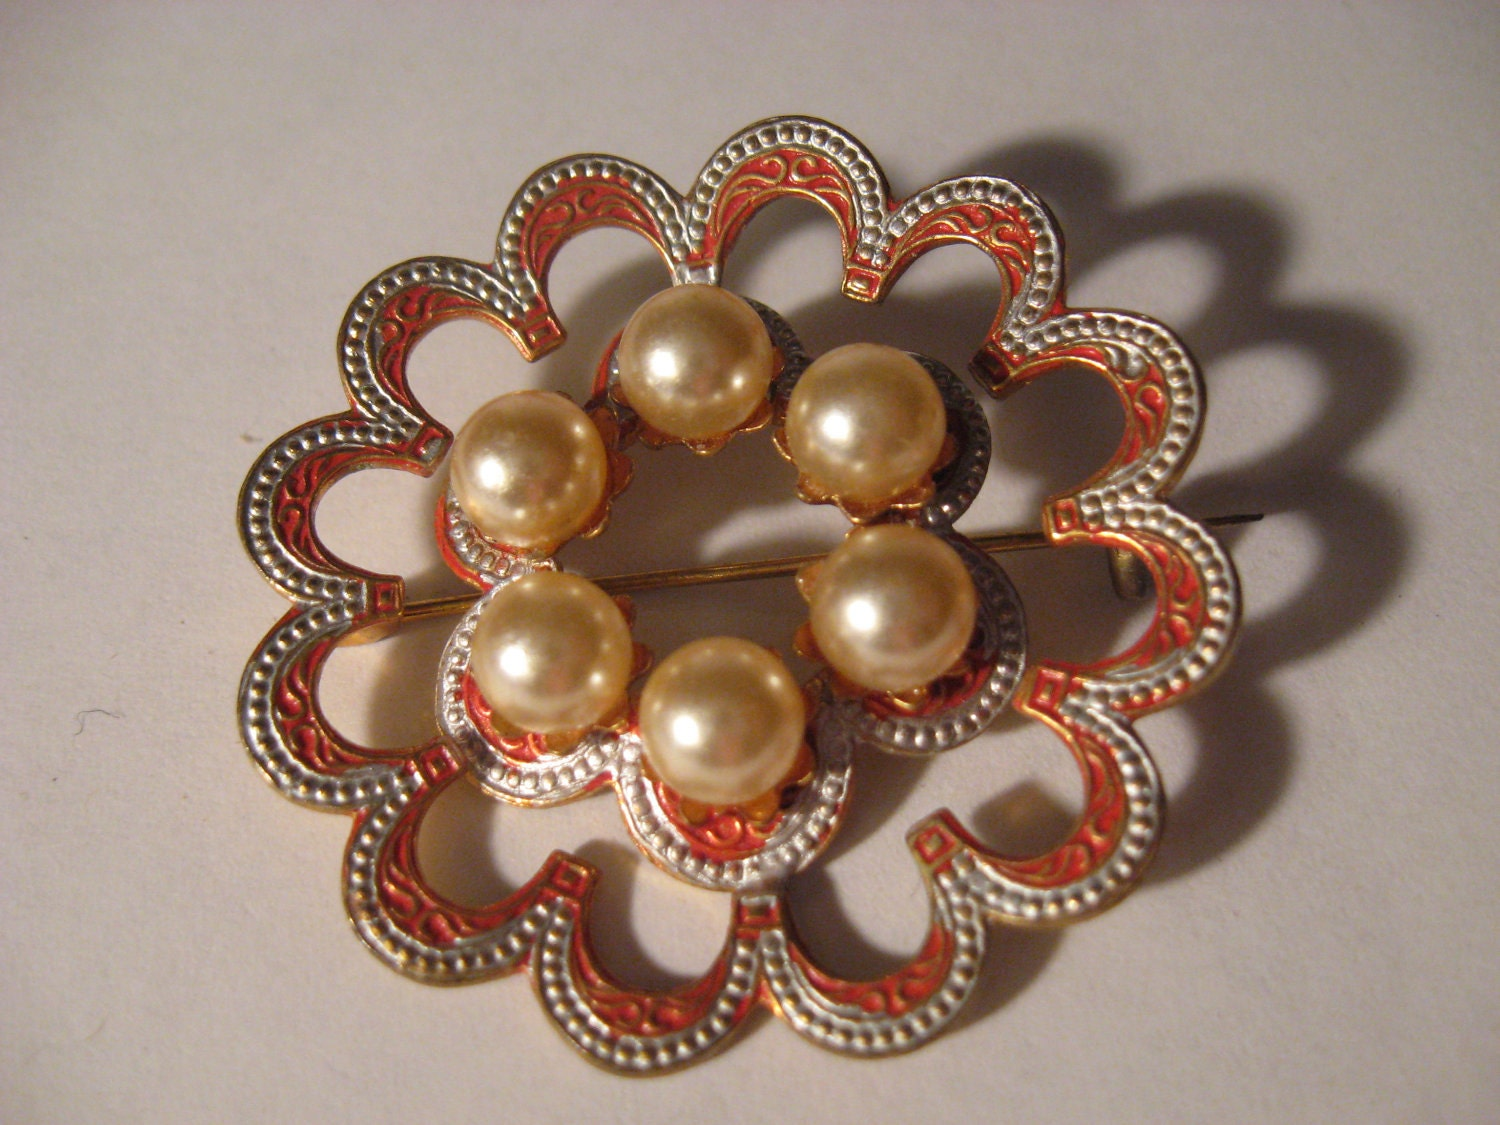 Vintage 1940s Antique Gold Gilt Silver & Enamel DAMASCENE Floral Brooch PIN w PEARLS Made in Spain